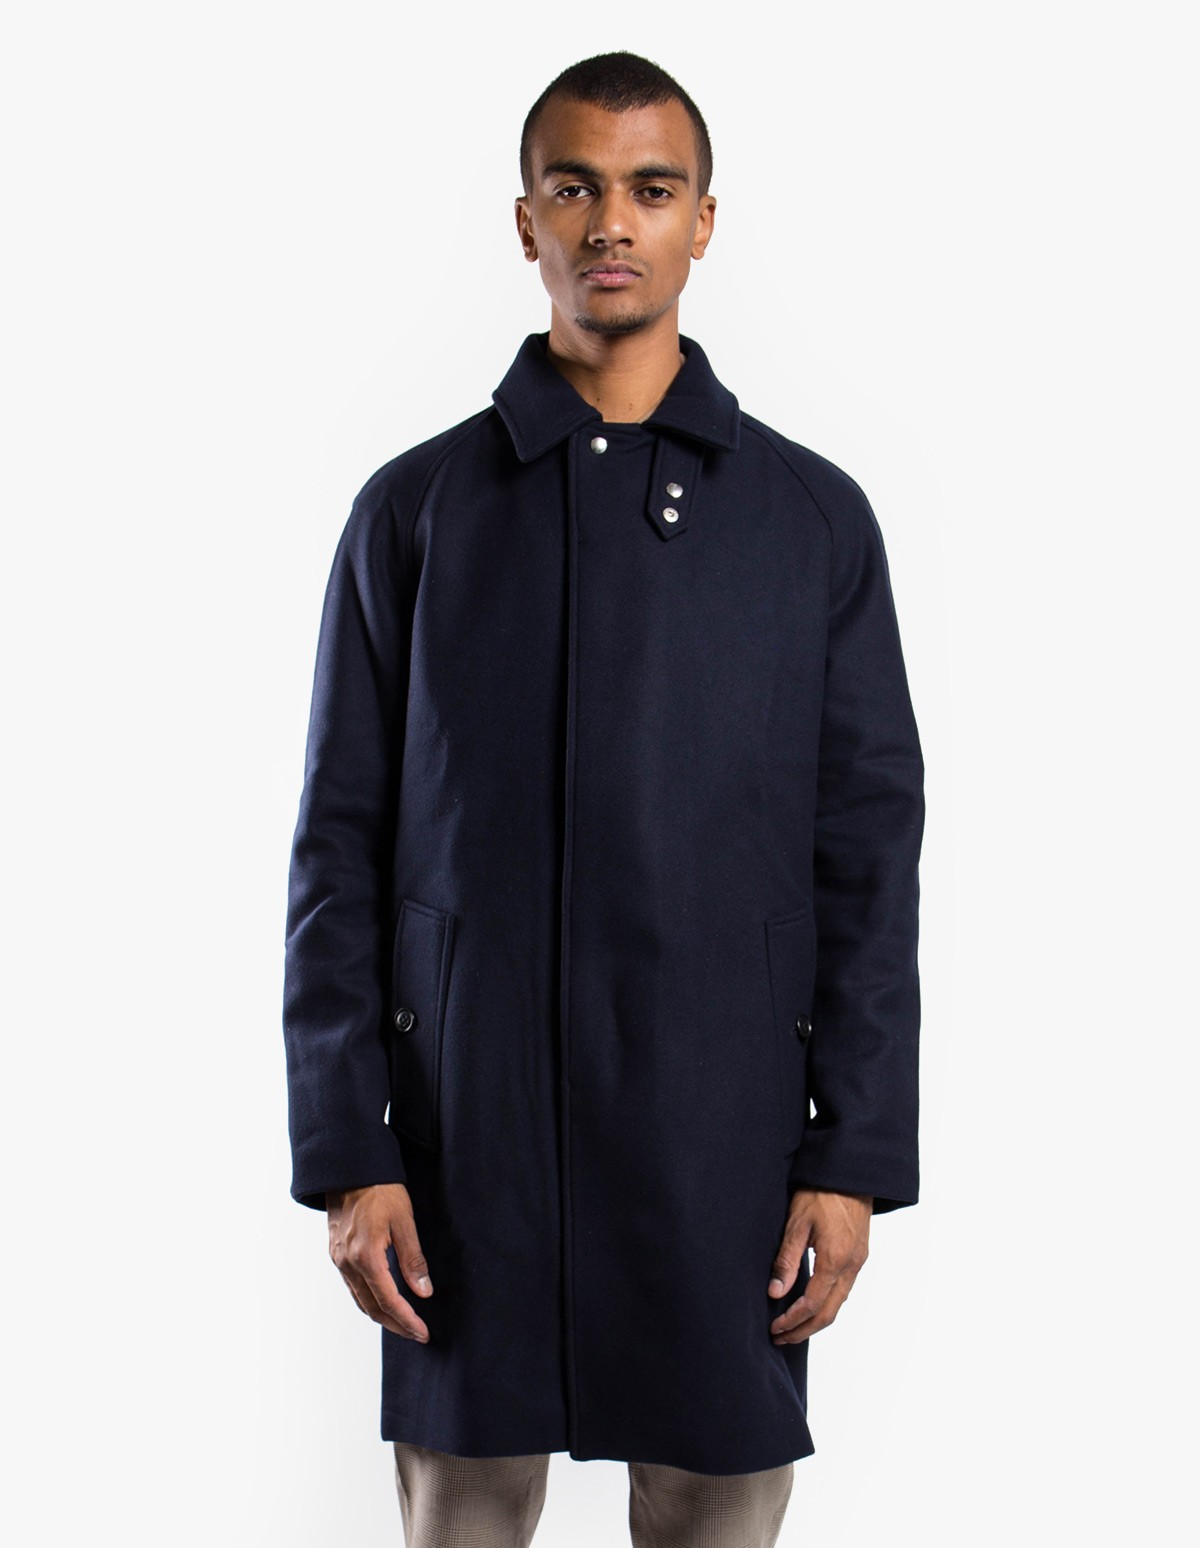 Soulland Bøge Wool Trench Coat in Navy